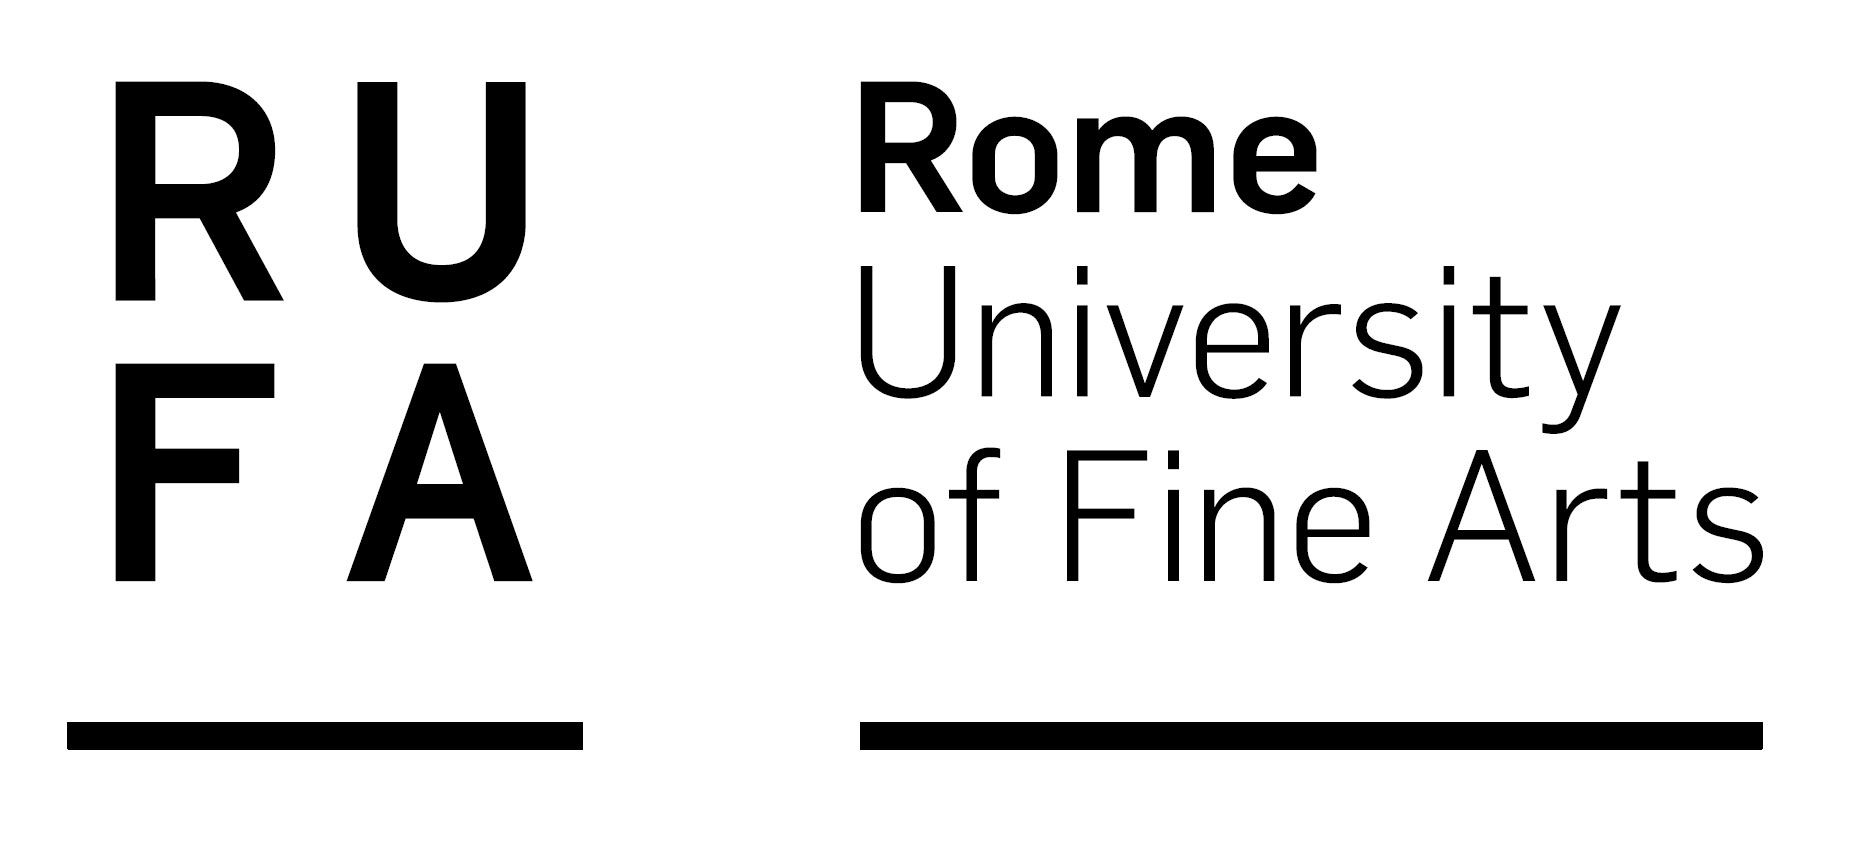 Rufa - Rome University of Fine Arts